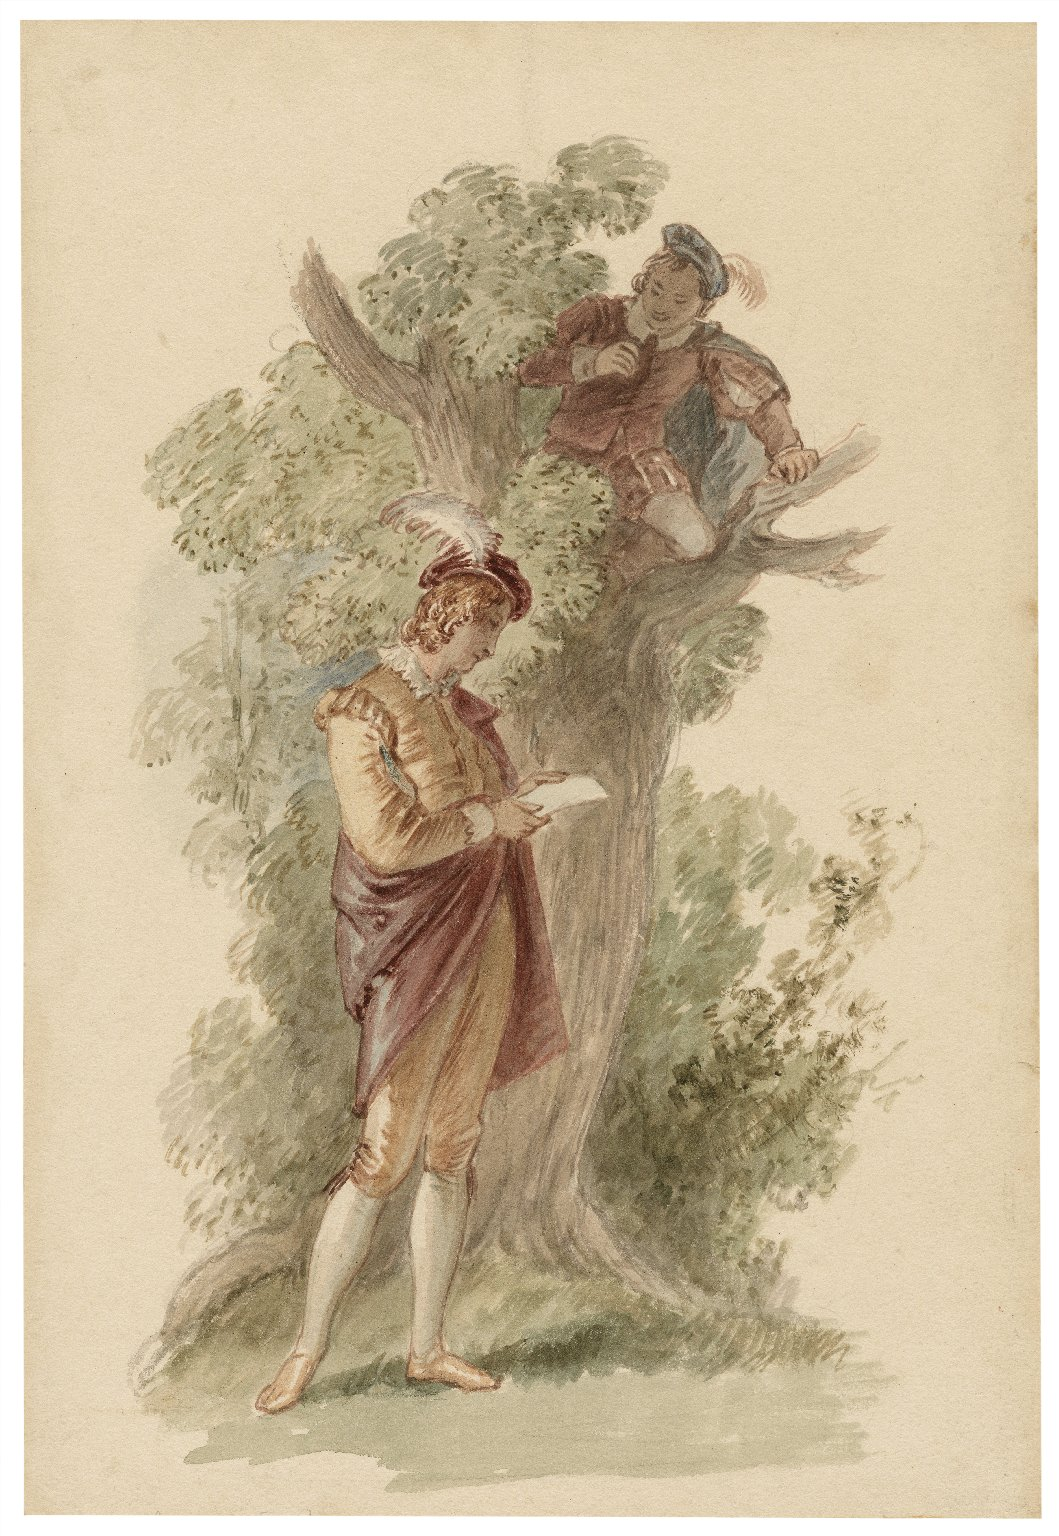 [A scene from Love's labour's lost - act IV, sc. 3] [graphic] / [John Wright].